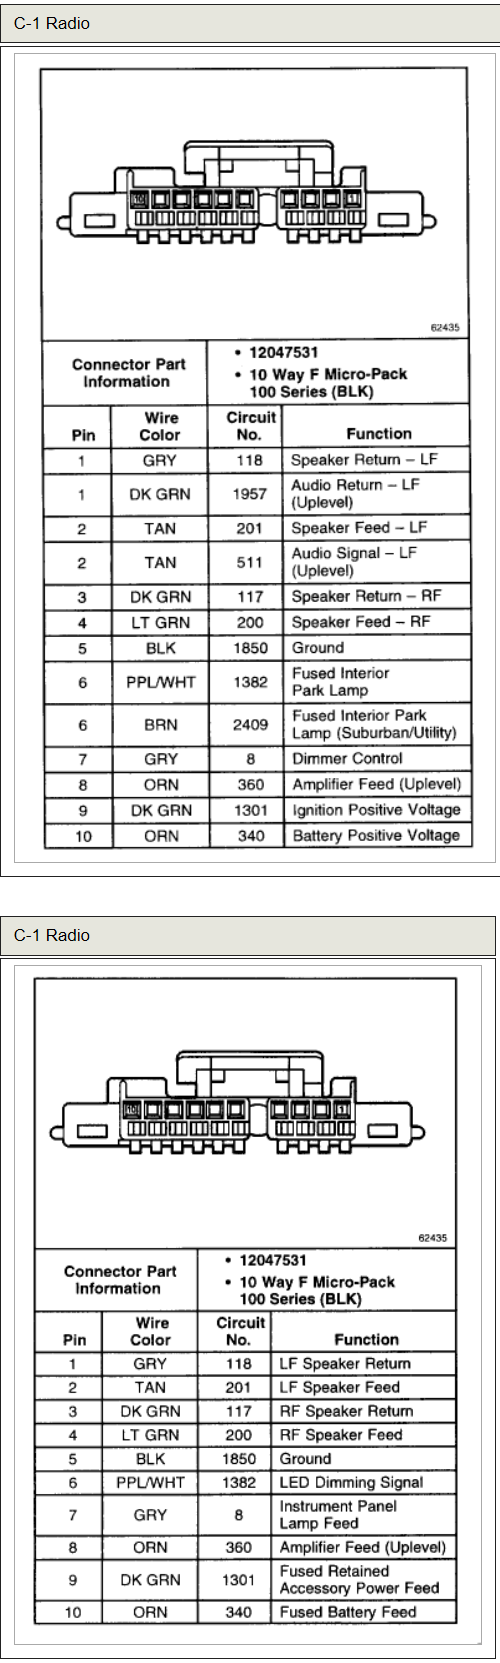 Chevrolet Tahoe LS 2000 stereo wiring connector 2 chevrolet car radio stereo audio wiring diagram autoradio 2002 chevrolet trailblazer radio wiring diagram at bayanpartner.co